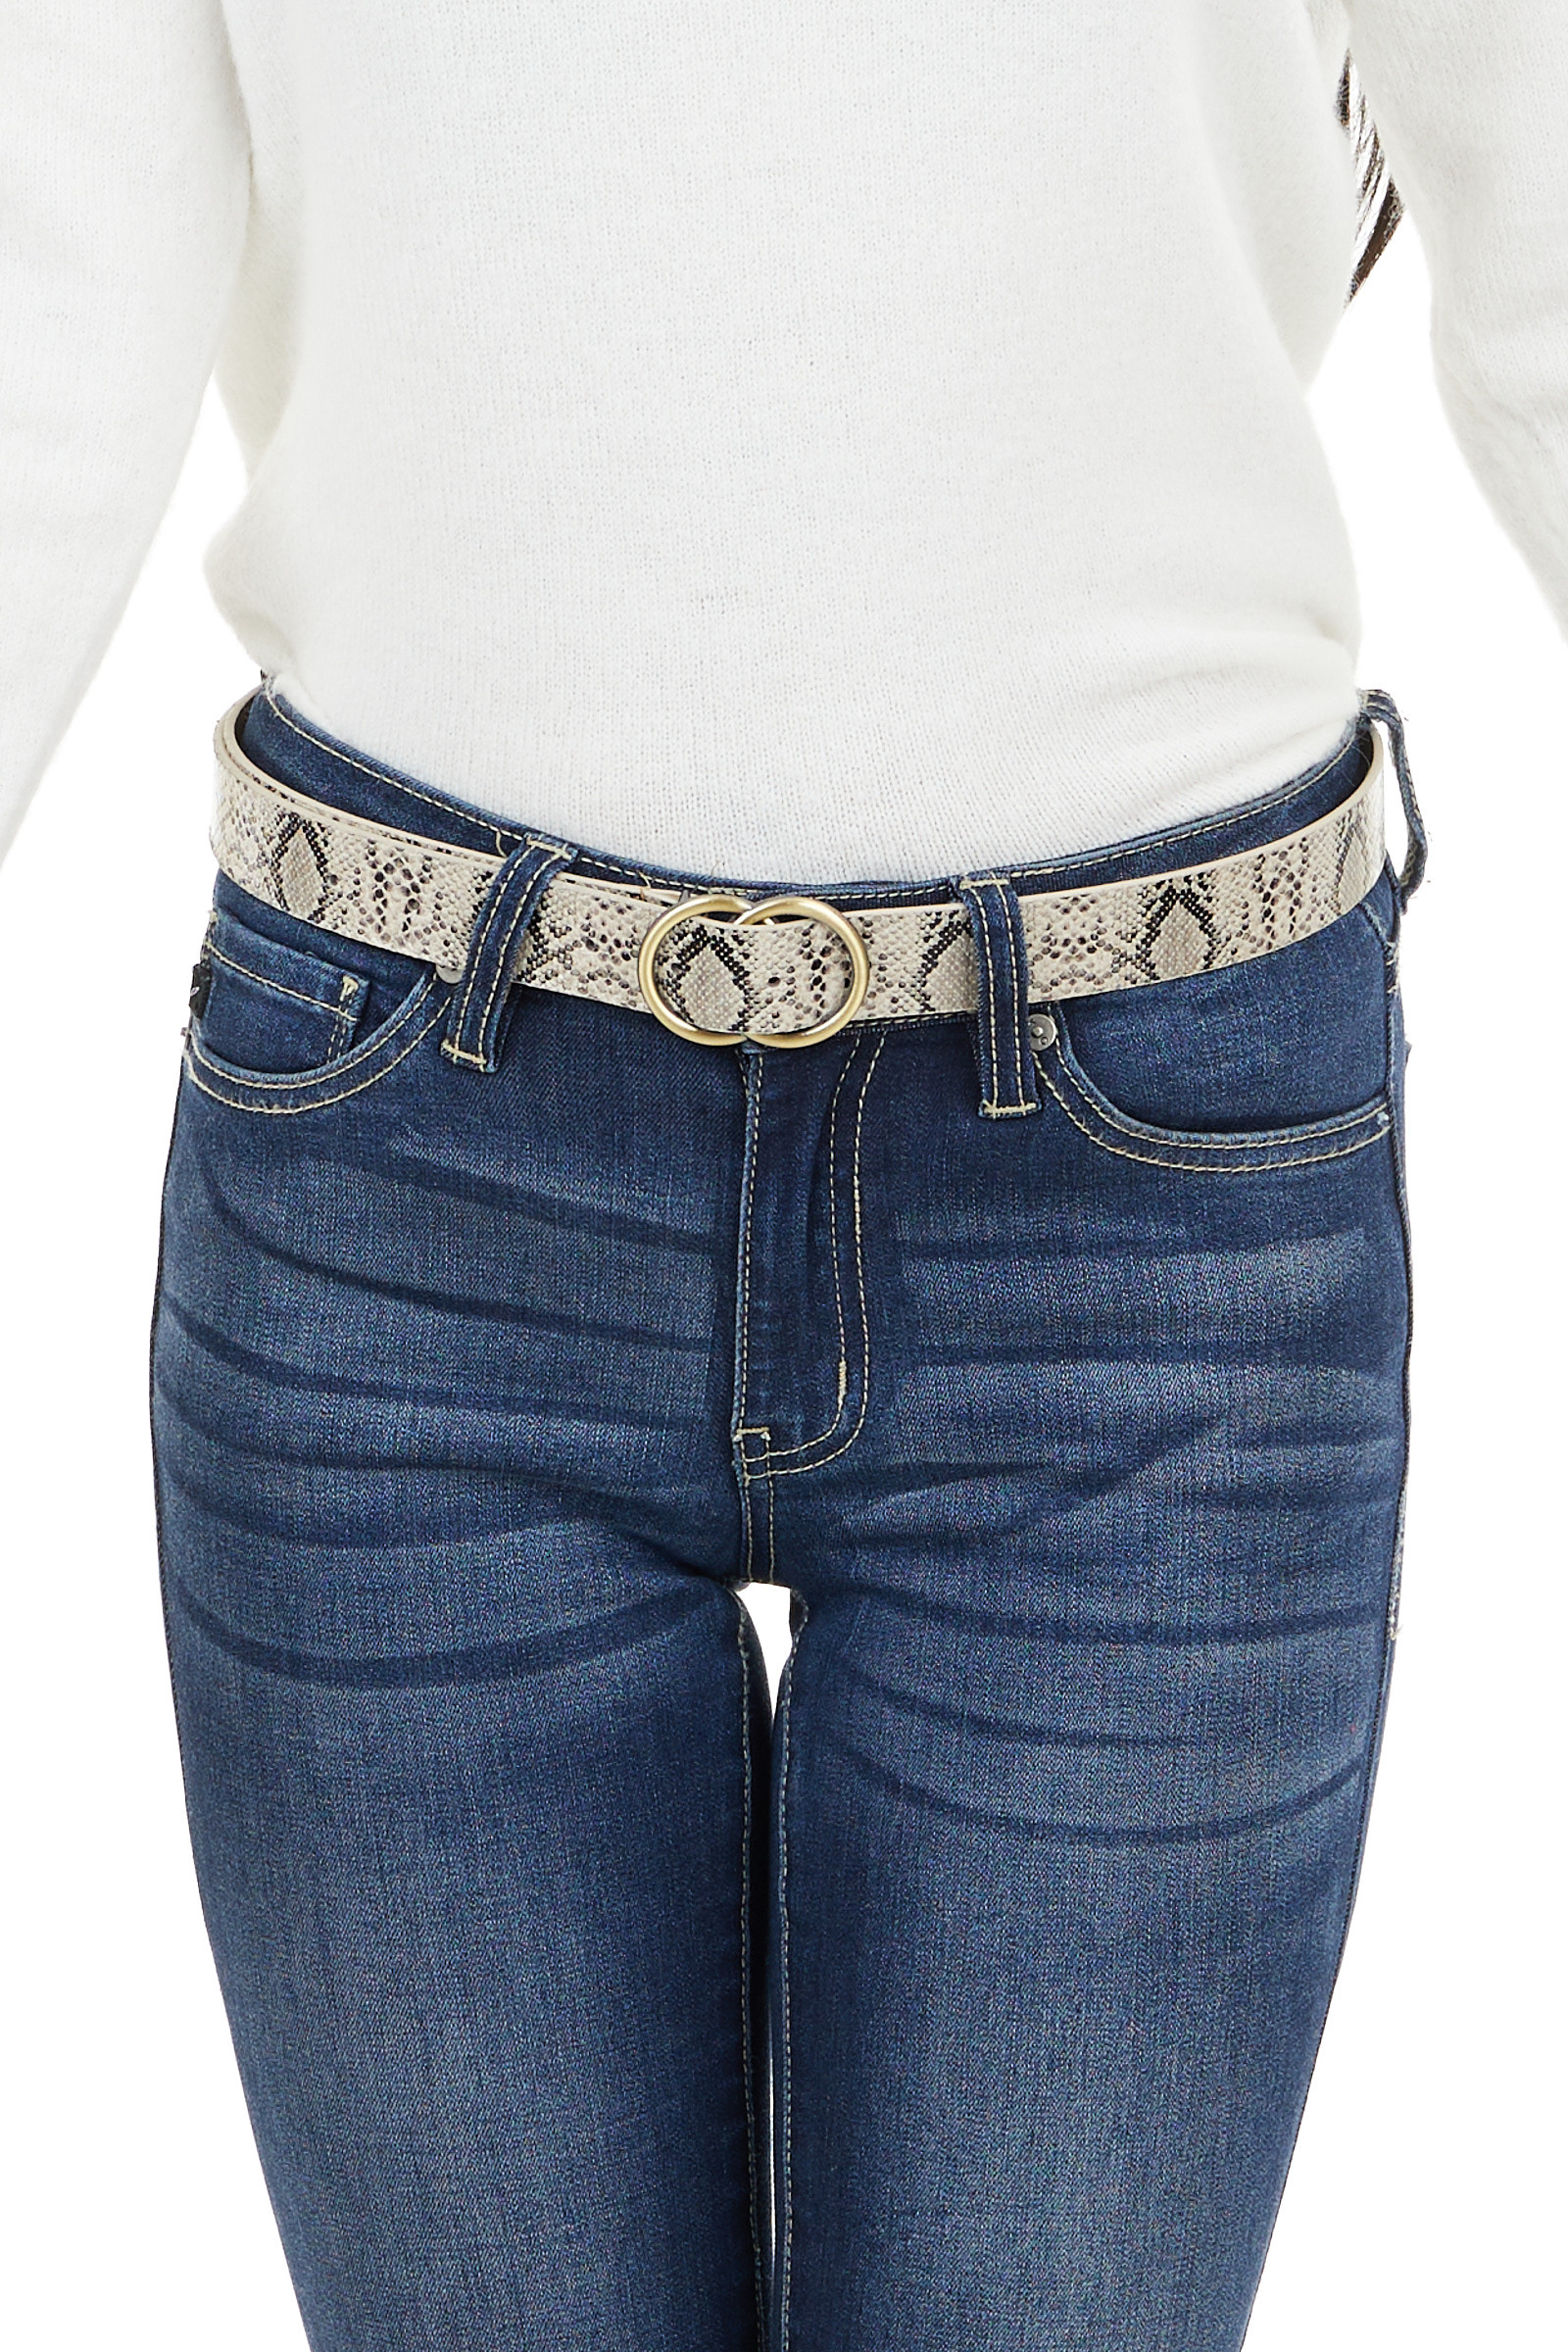 Black and Ivory Faux Snakeskin Belt with Double Ring Buckle